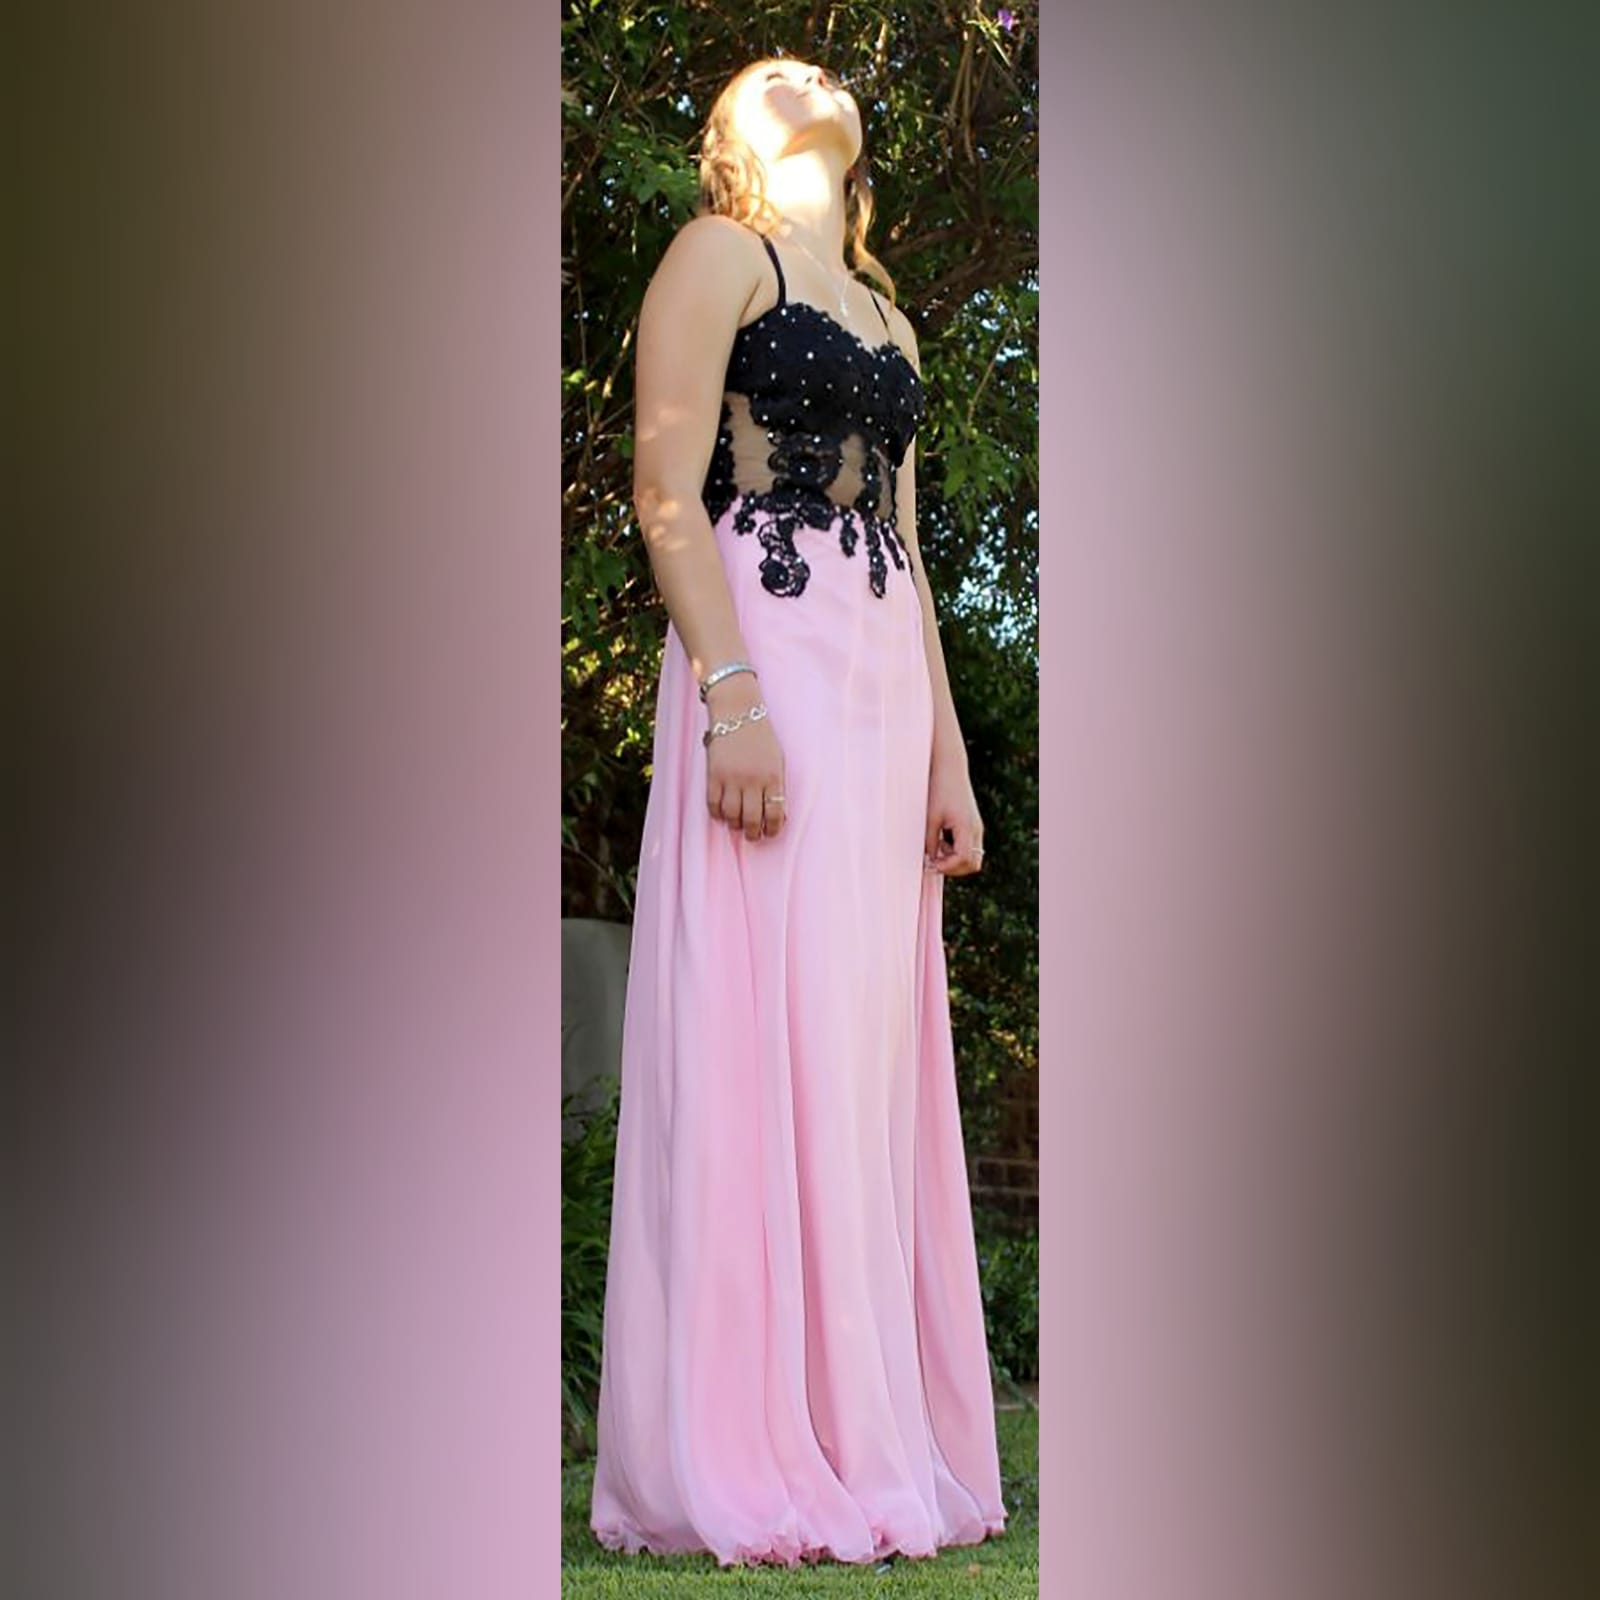 Pink and black illusion lace bodice boob tube prom dress 5 pink and black illusion lace bodice, boob tube prom dress detailed with silver beads.